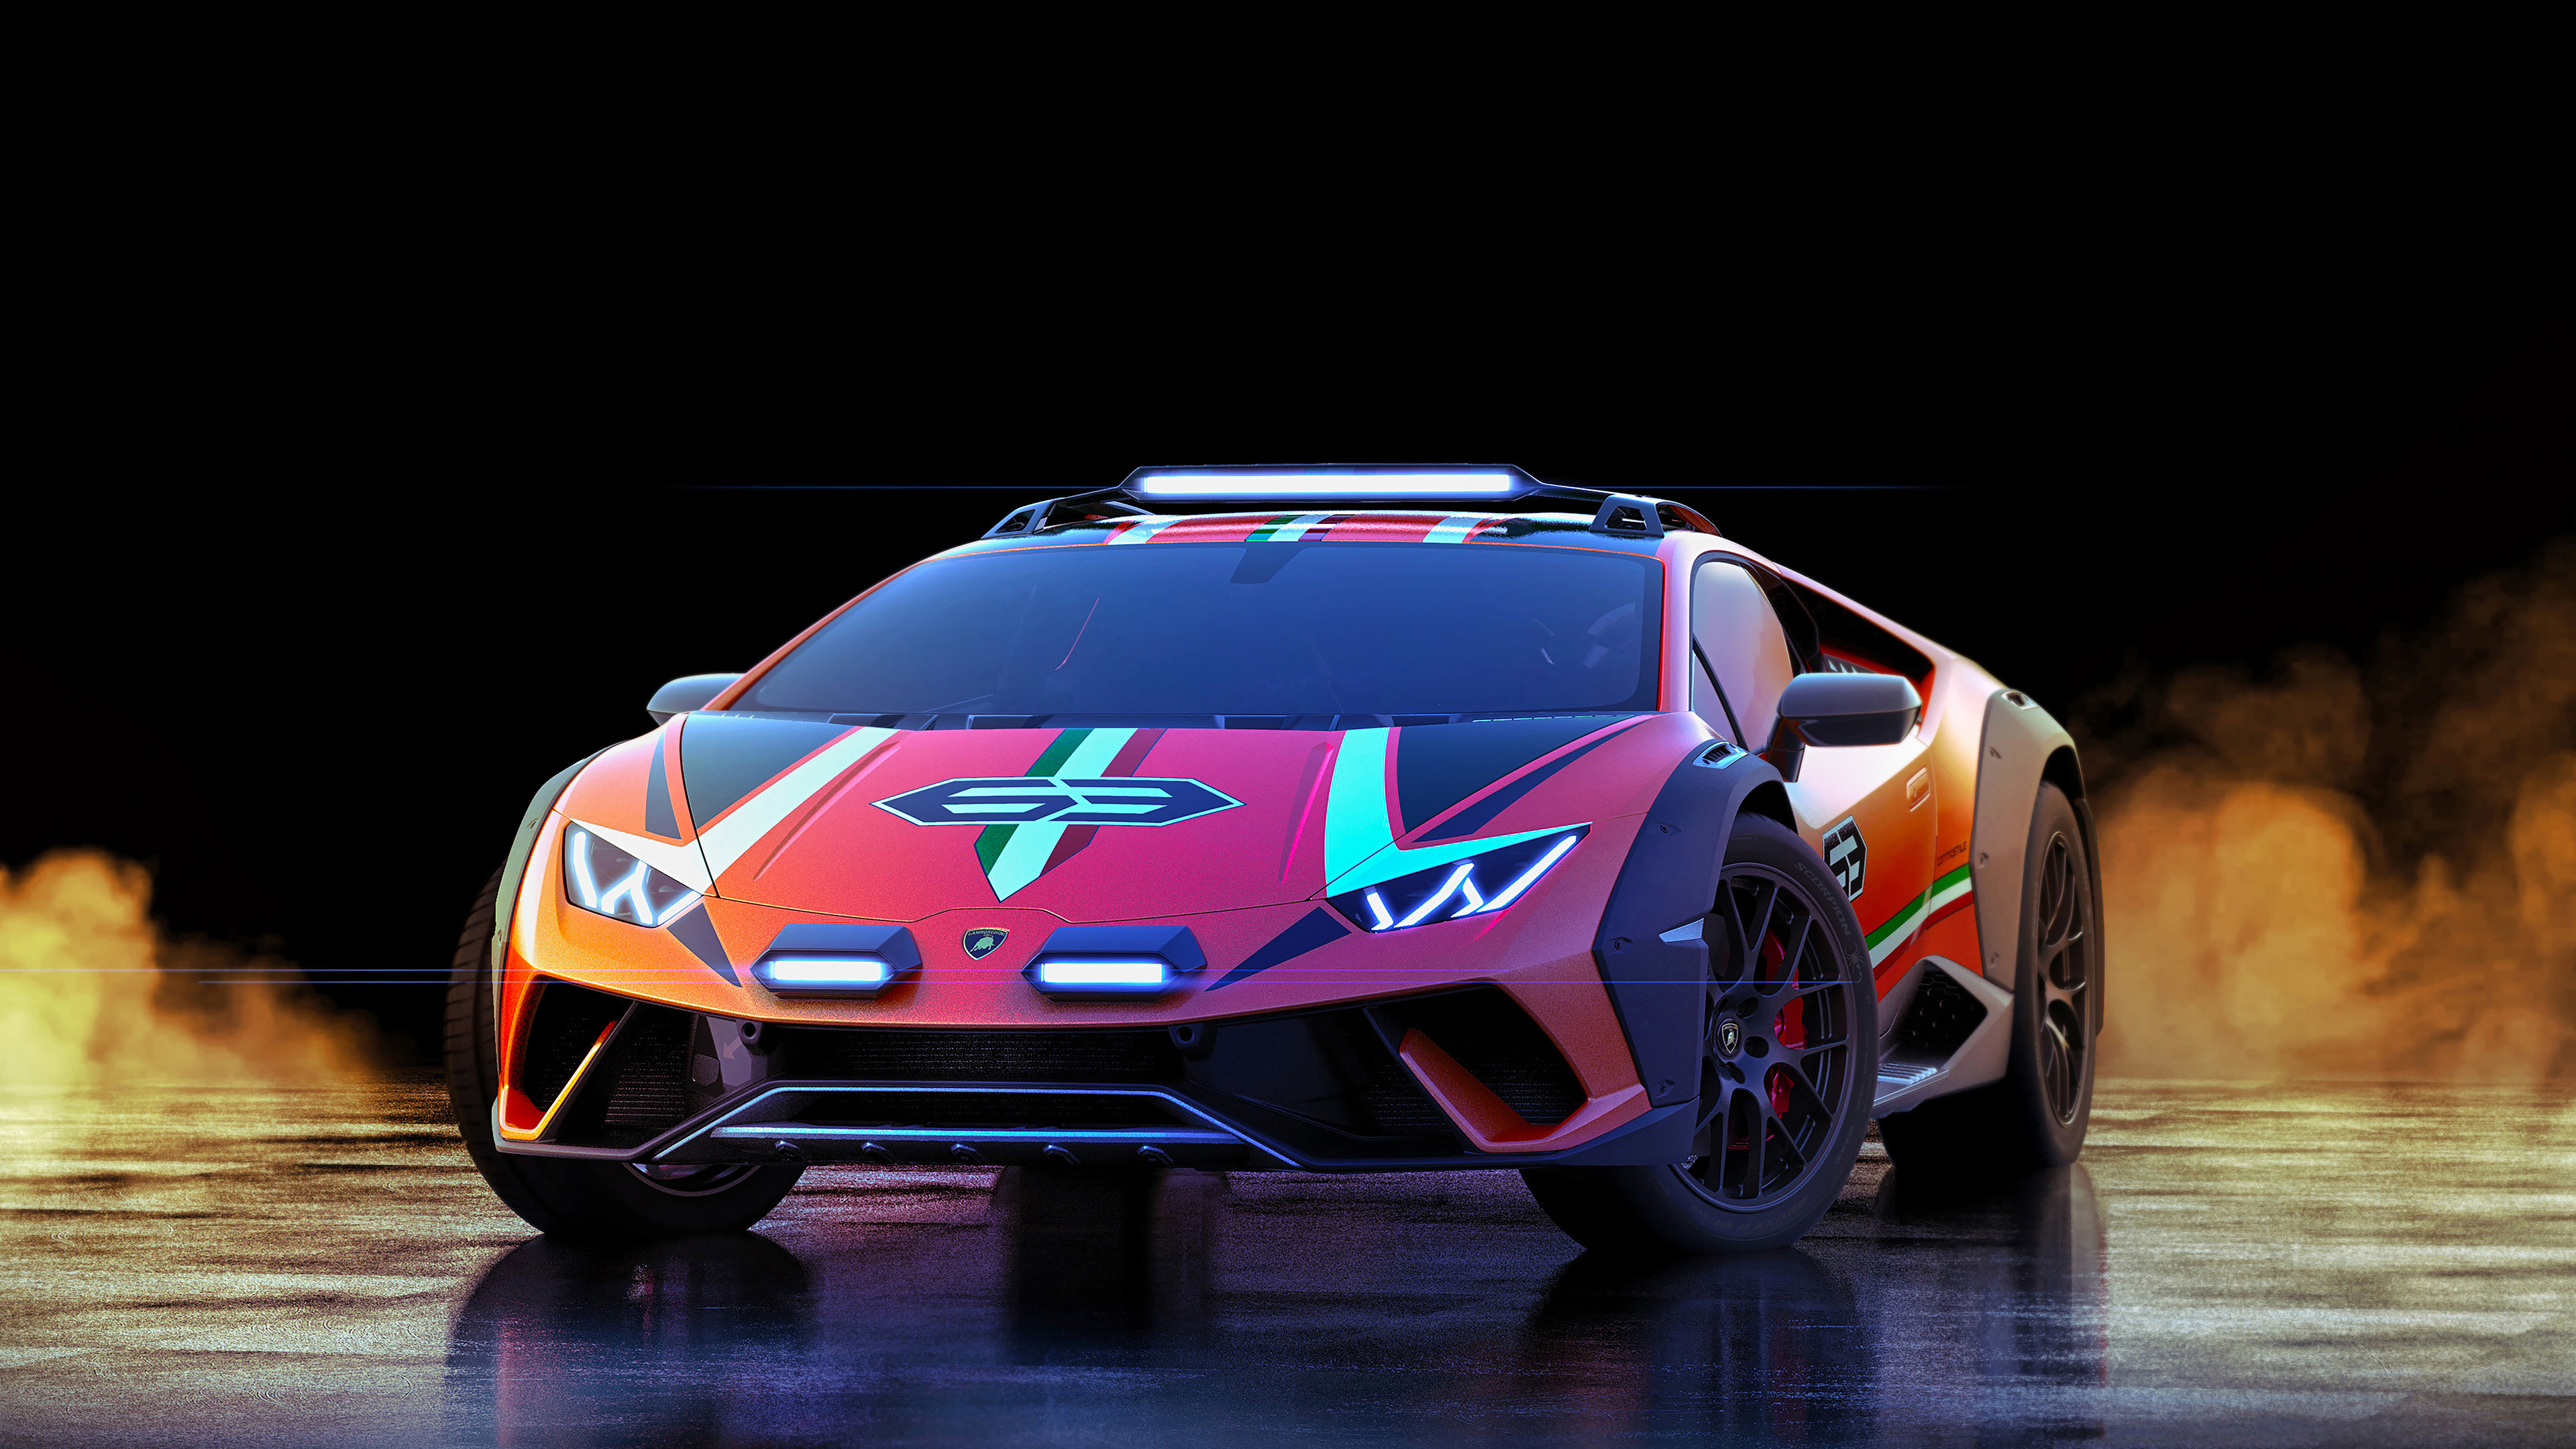 2019 lamborghini huracan sterrato concept 1562107905 - 2019 Lamborghini Huracan Sterrato Concept - lamborghini wallpapers, lamborghini huracan wallpapers, lamborghini huracan sterrato wallpapers, hd-wallpapers, cars wallpapers, 5k wallpapers, 4k-wallpapers, 2019 cars wallpapers